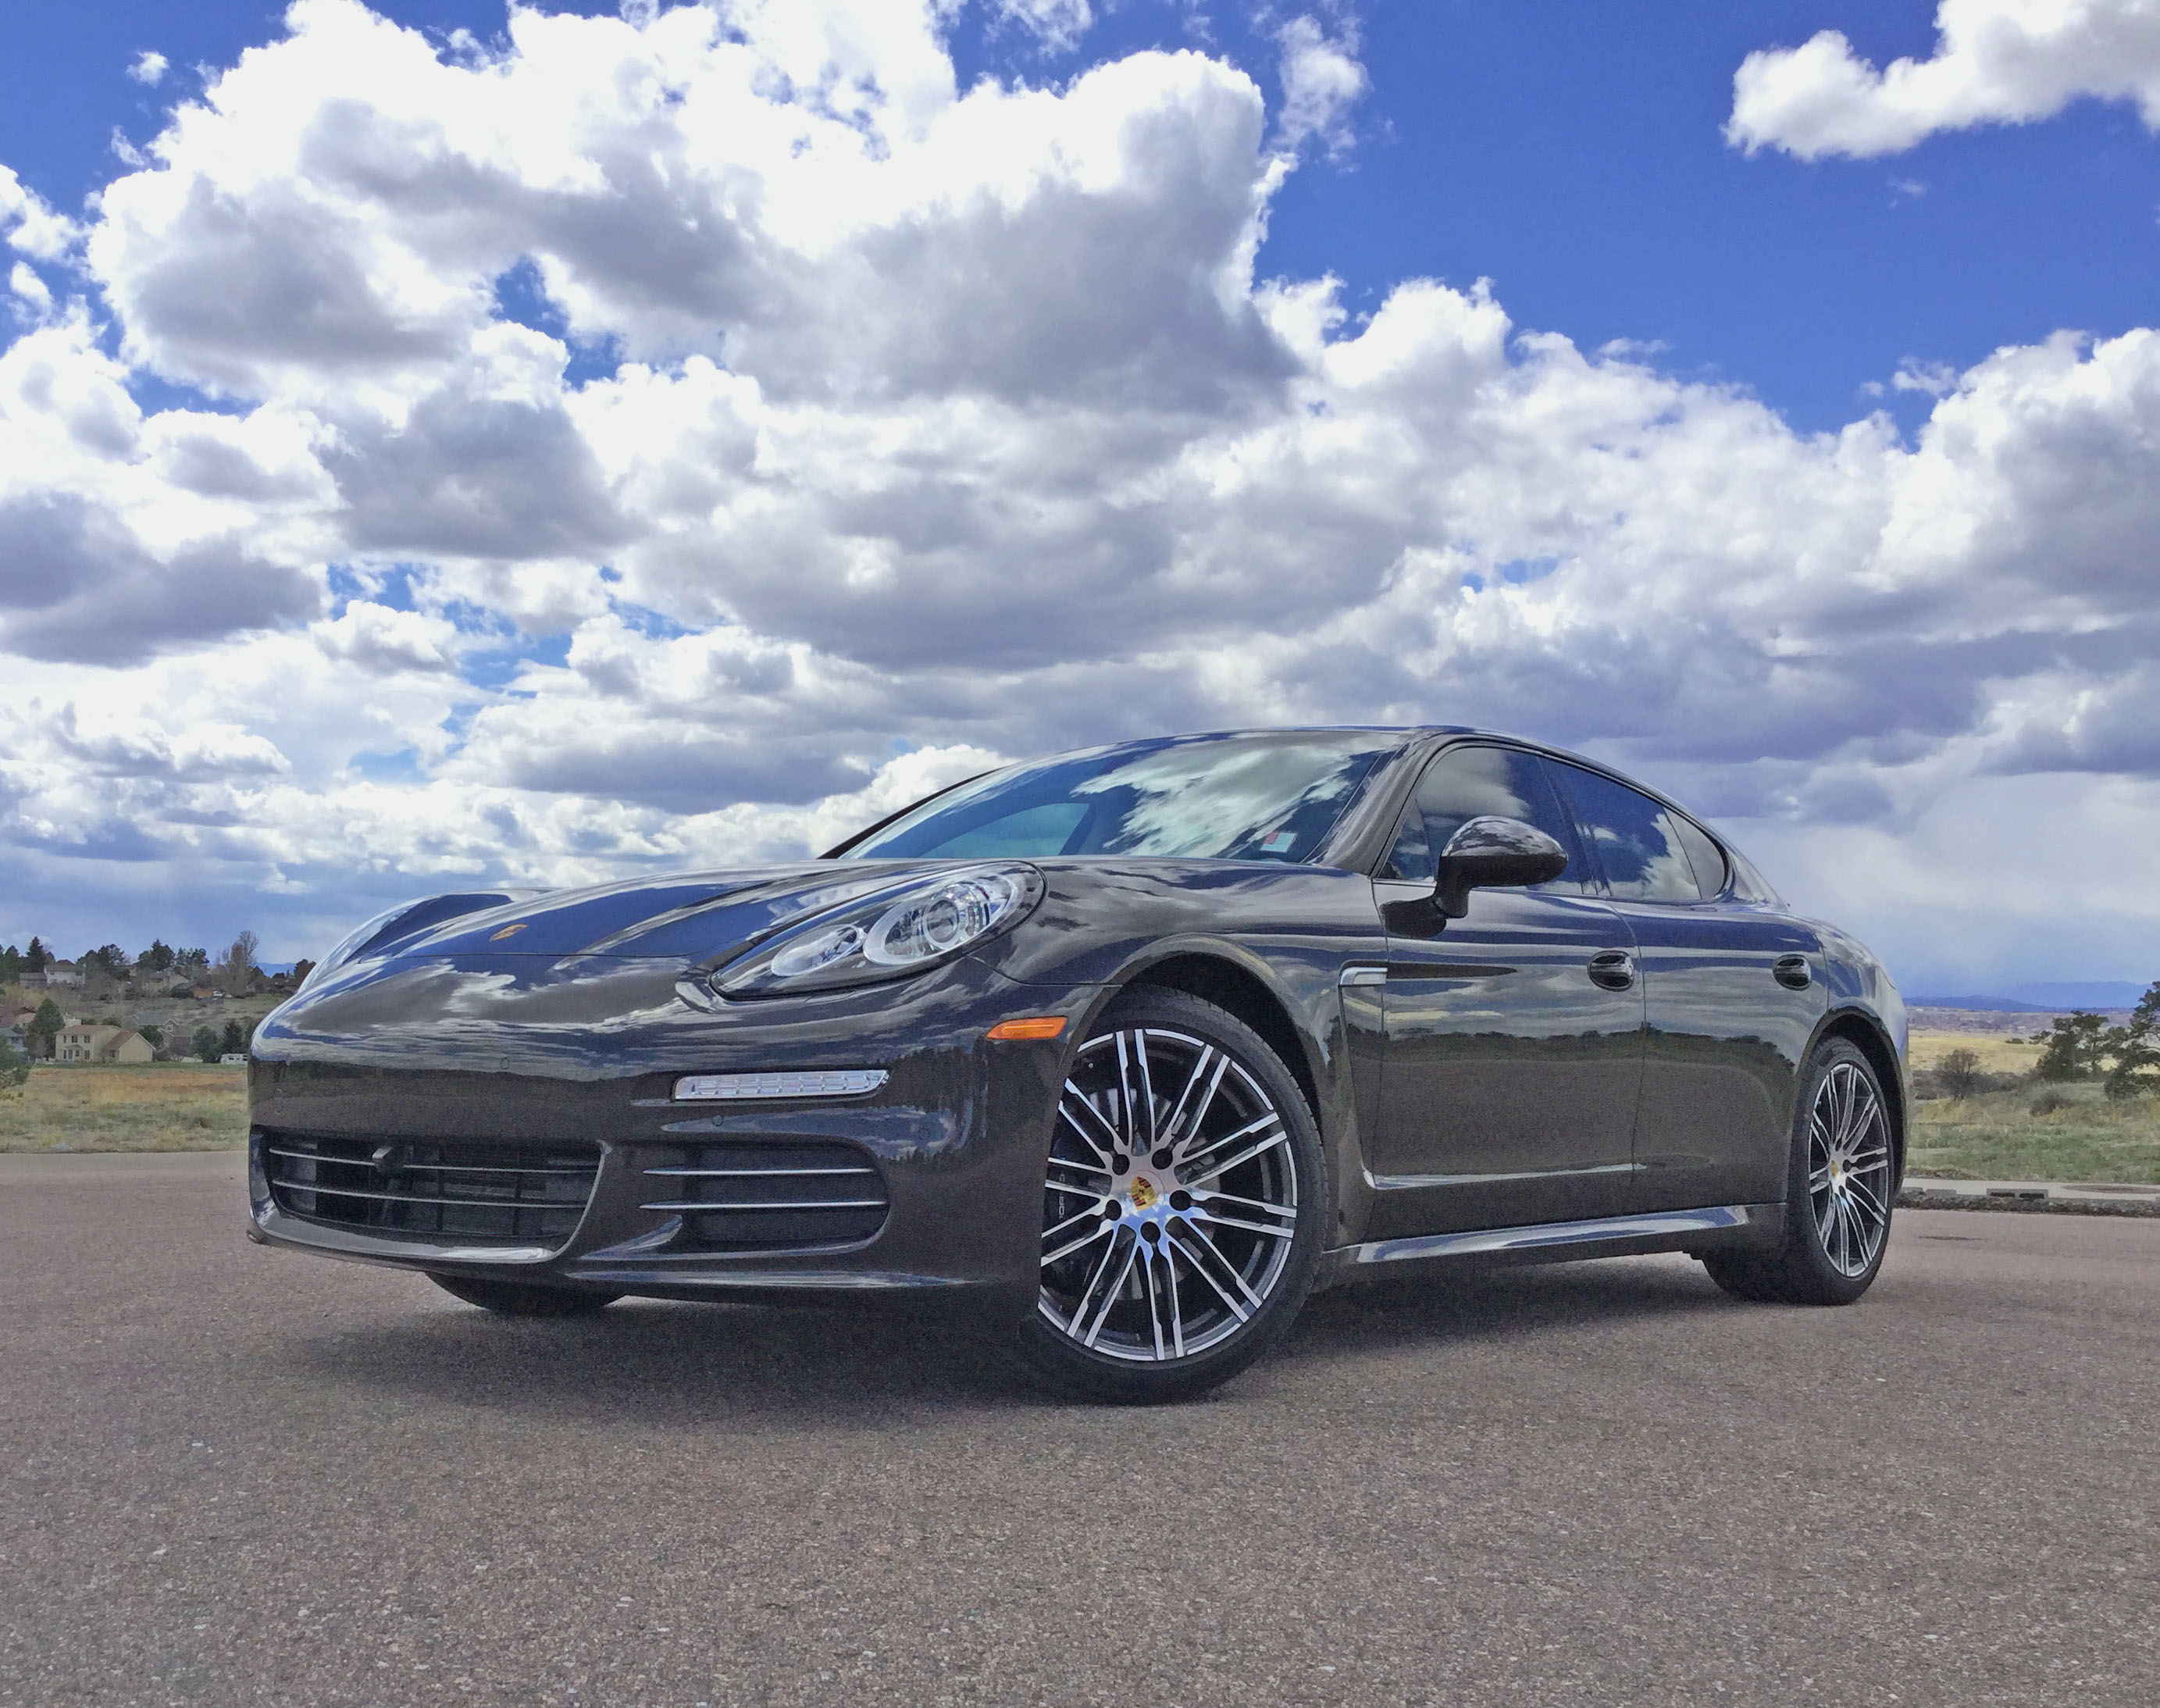 2016 Porsche Panamera 4 and a beautiful Colorado sky.